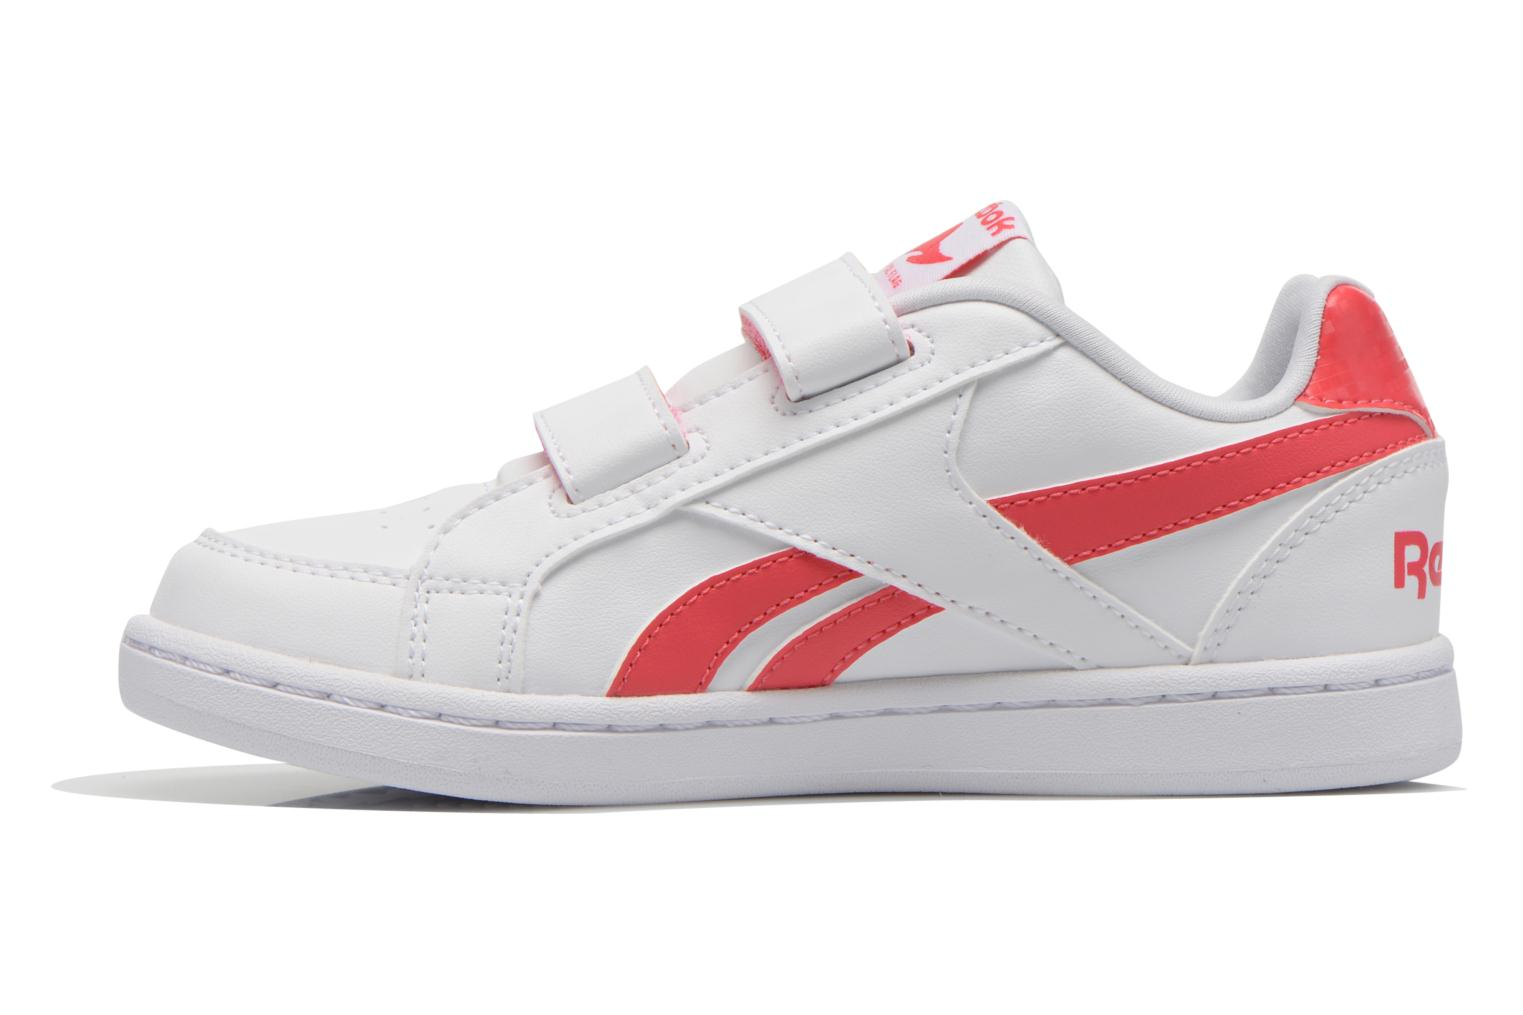 Reebok Royal Prime Alt White/Fearless Pink